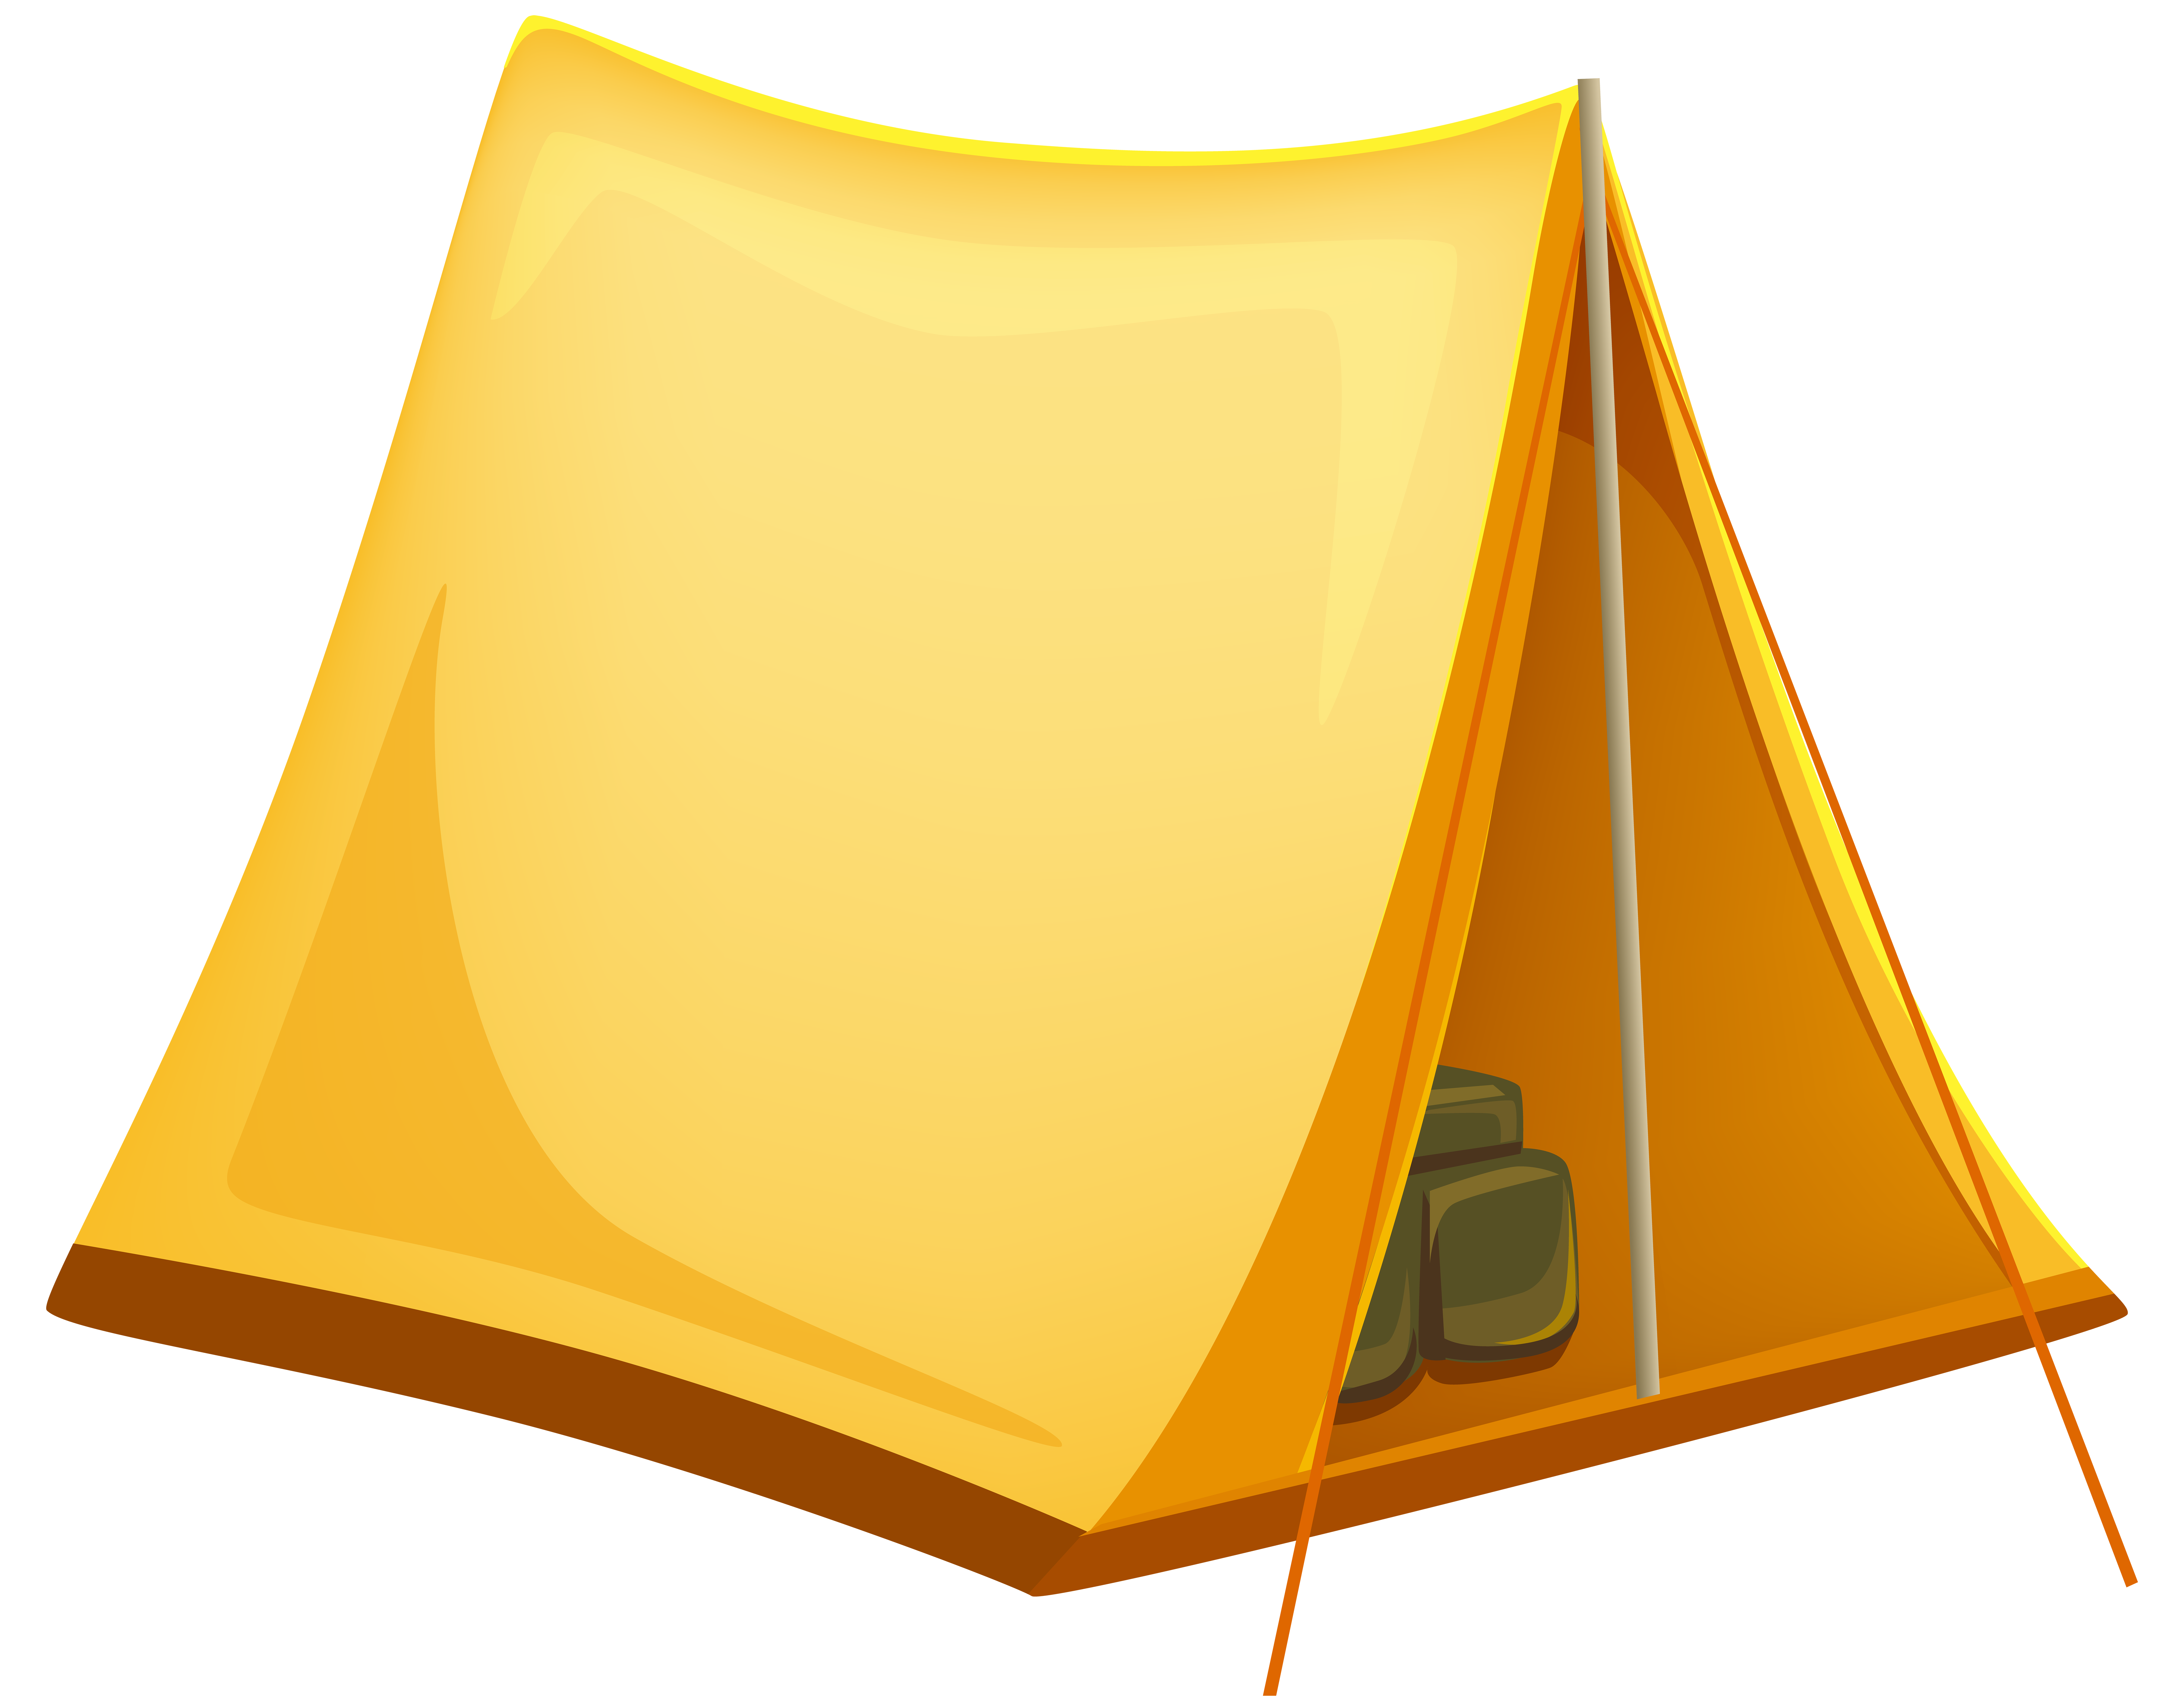 clipart royalty free library Tent clipart. Clip art tourist png.